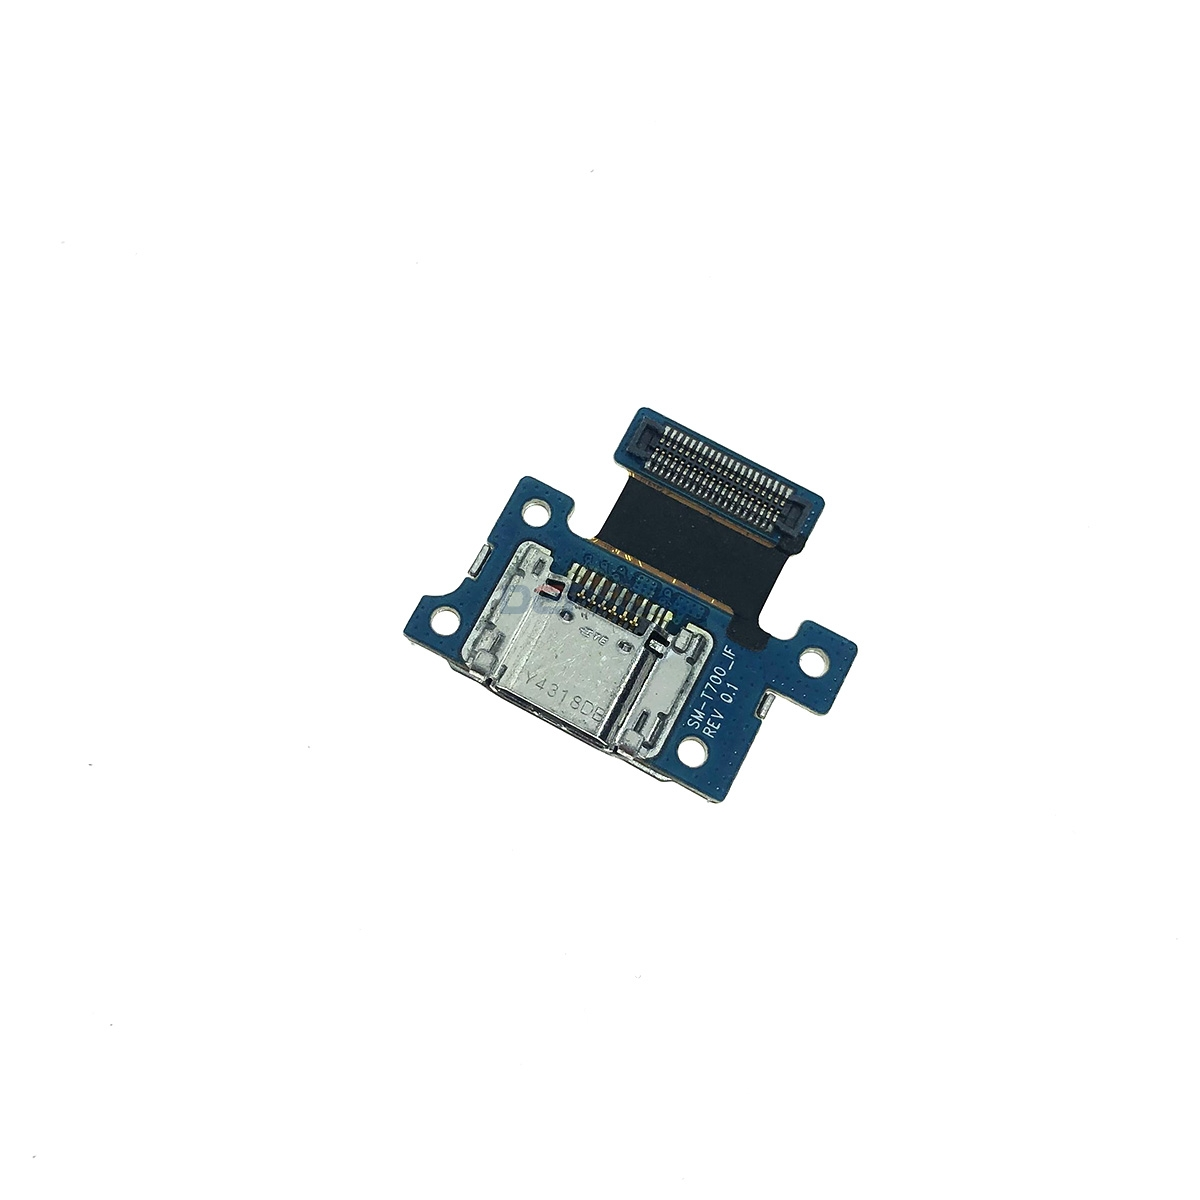 USB Charging Port Connector Plug Charge Dock Jack Socket Flex Cable For Samsung Galaxy Tab S 8.4 T700 SM-T700